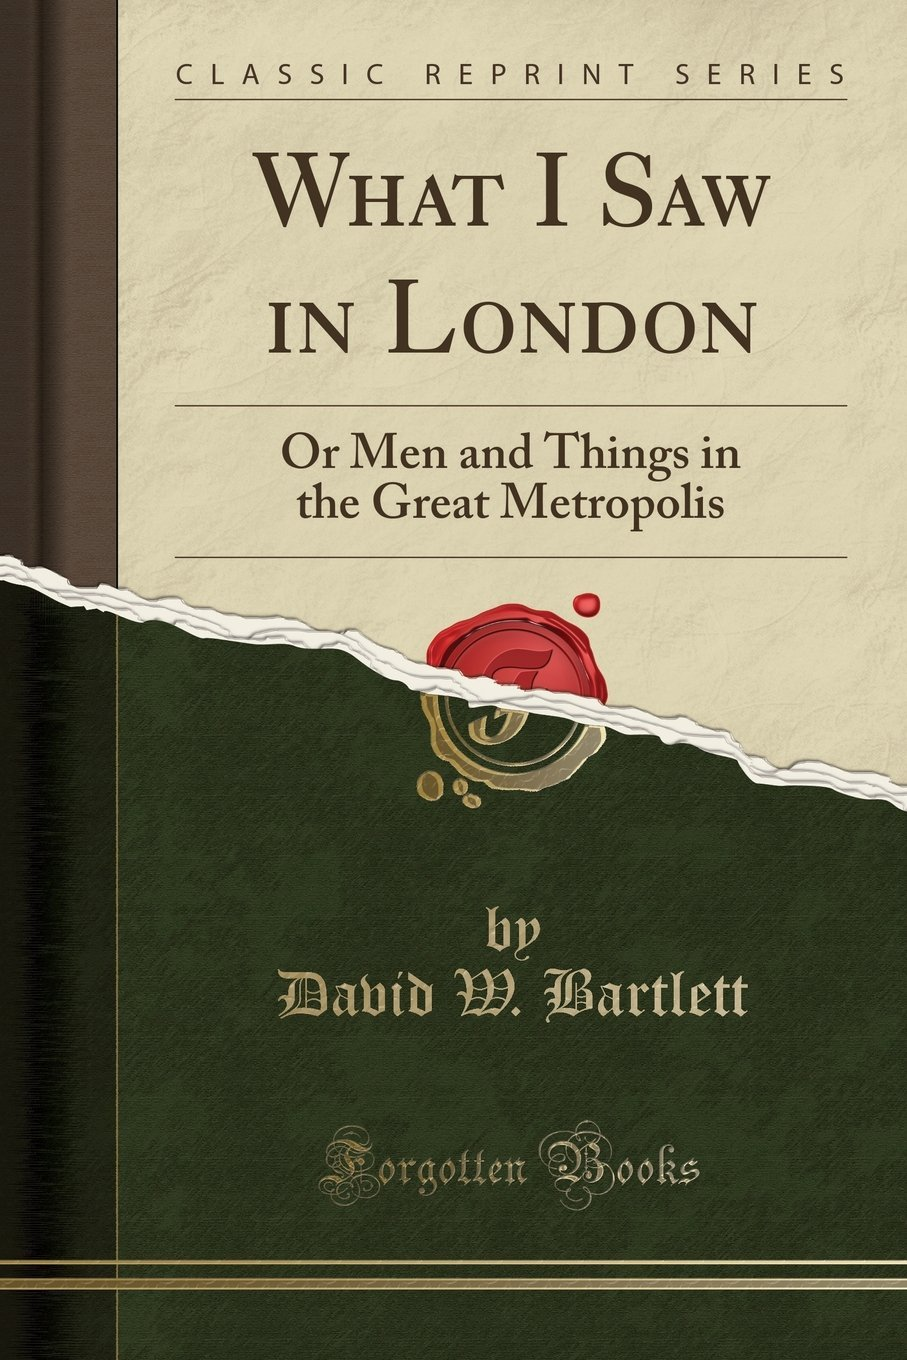 Things to do in london for men